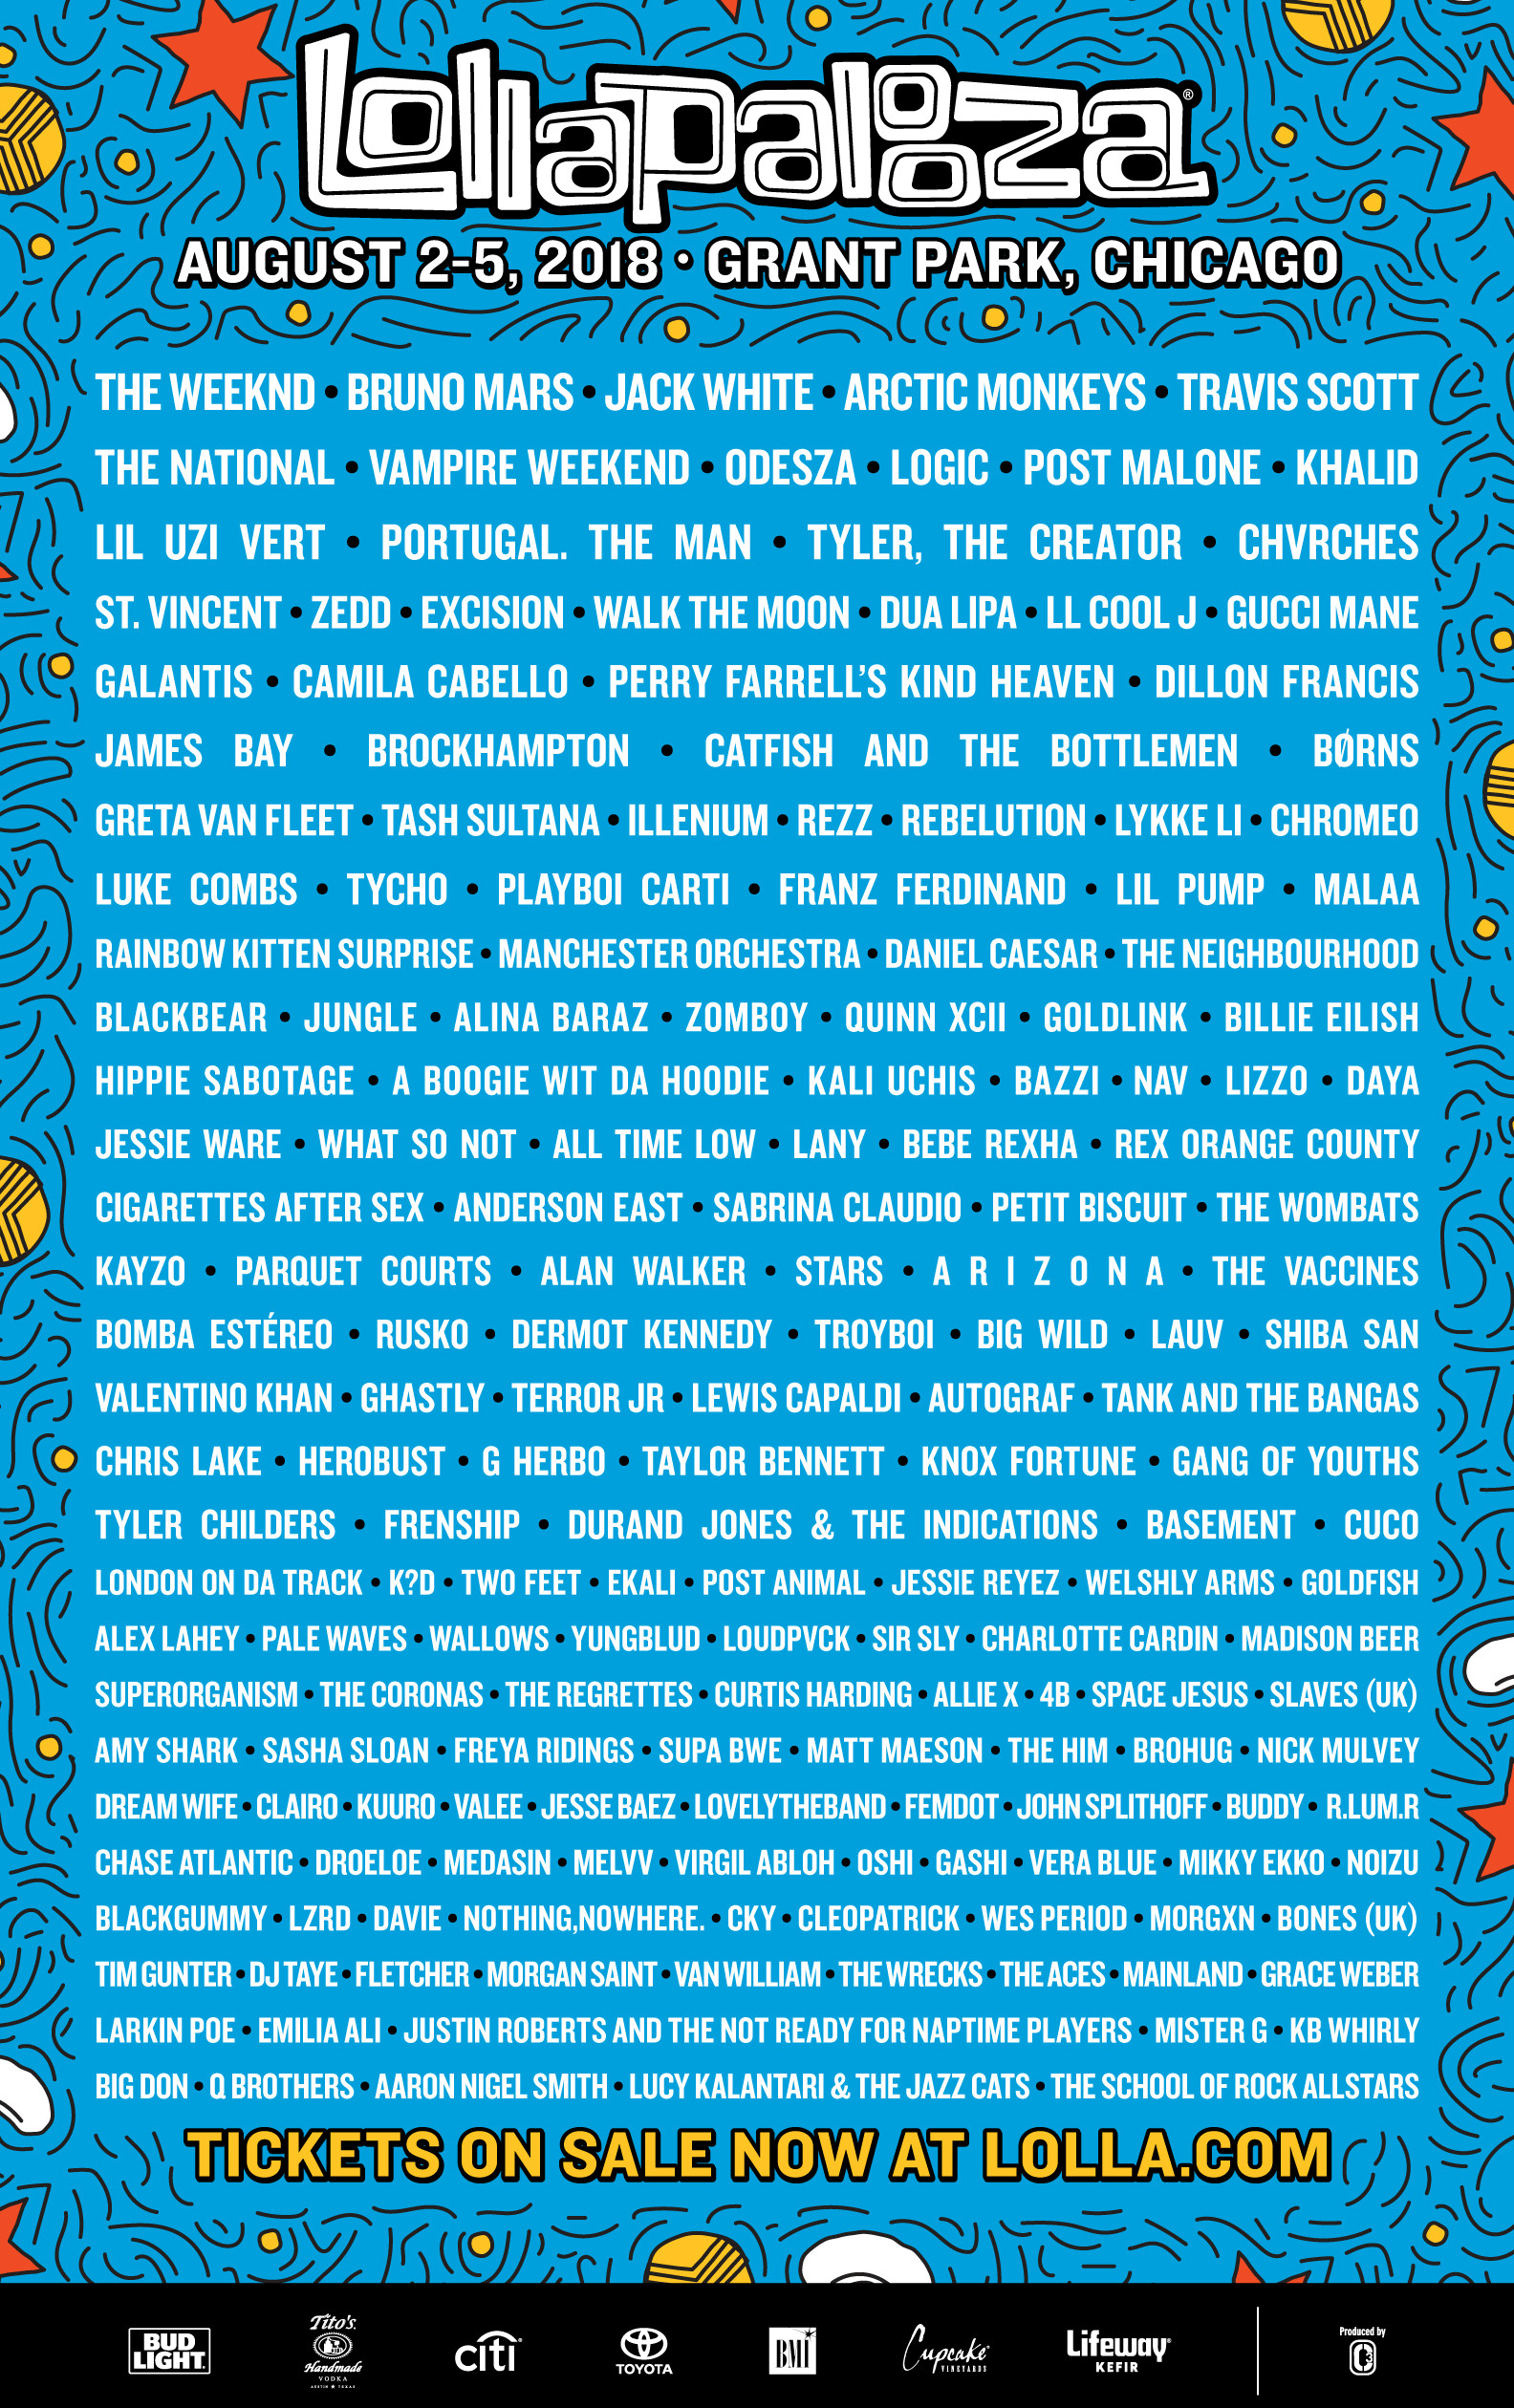 Lollapalooza 2018 Lineup The Weeknd Bruno Mars Travis Scott Jack White Arctic Monkeys grant park chicago august 2 5 2018